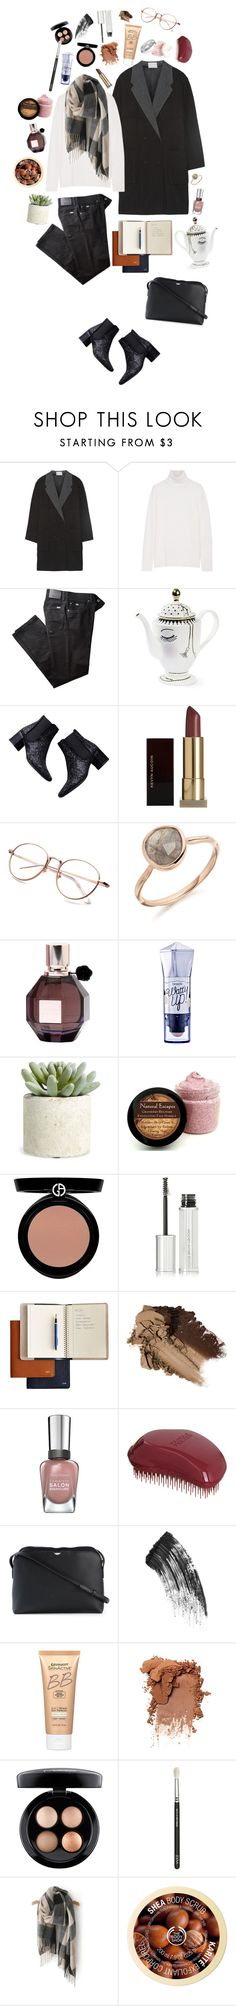 """""""Coat #8"""" by triomphevictorieuse ❤ liked on Polyvore featuring Alexander Wang, Equipment, BRAX, Zara, Kevyn Aucoin, Monica Vinader, Viktor & Rolf, Benefit, Allstate Floral and Giorgio Armani"""